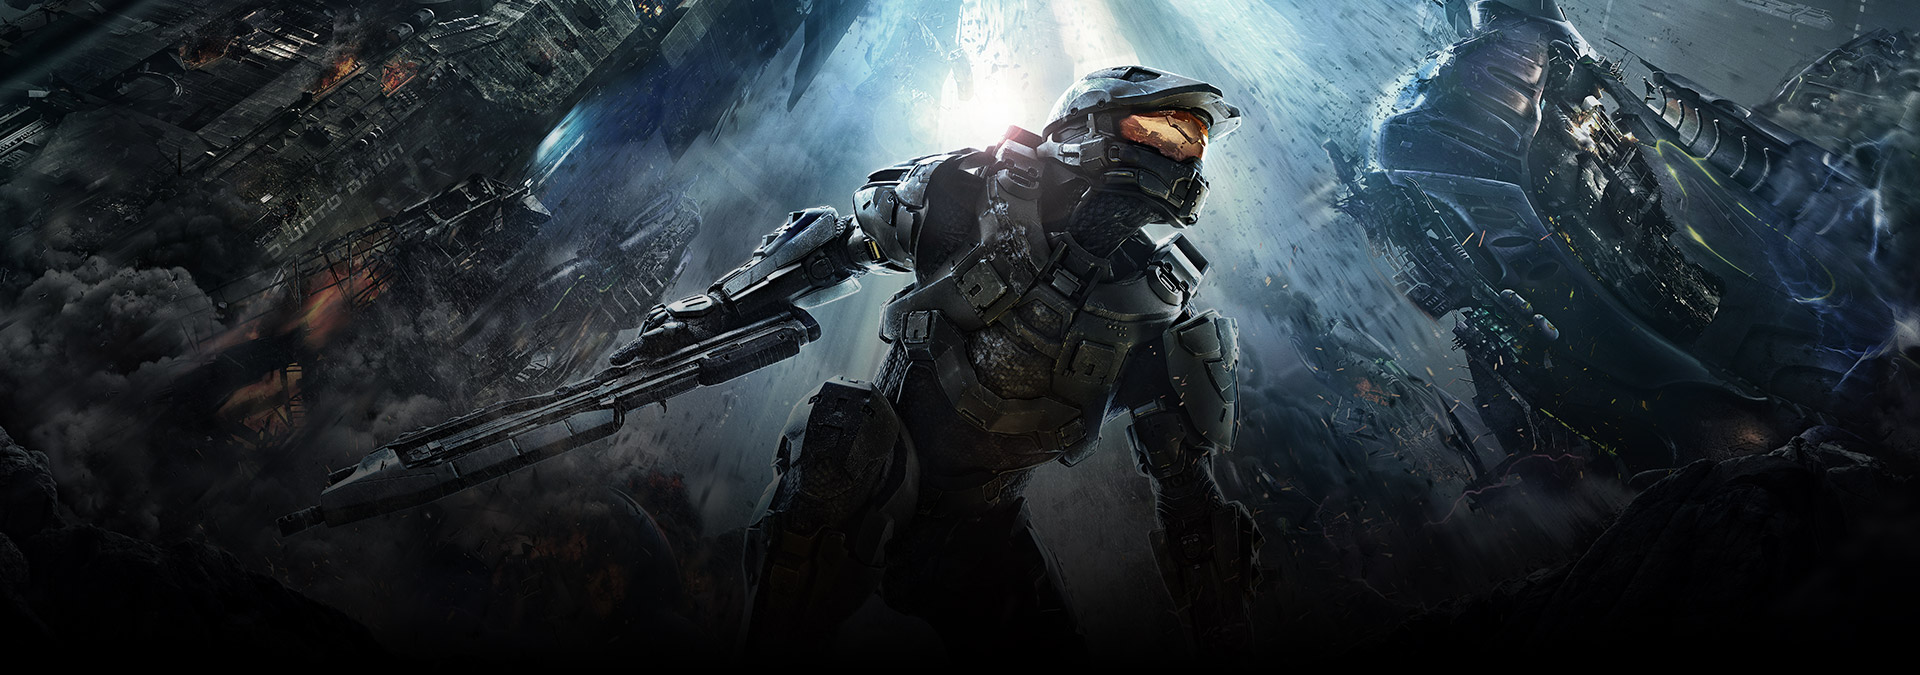 Halo 4 Pics, Video Game Collection